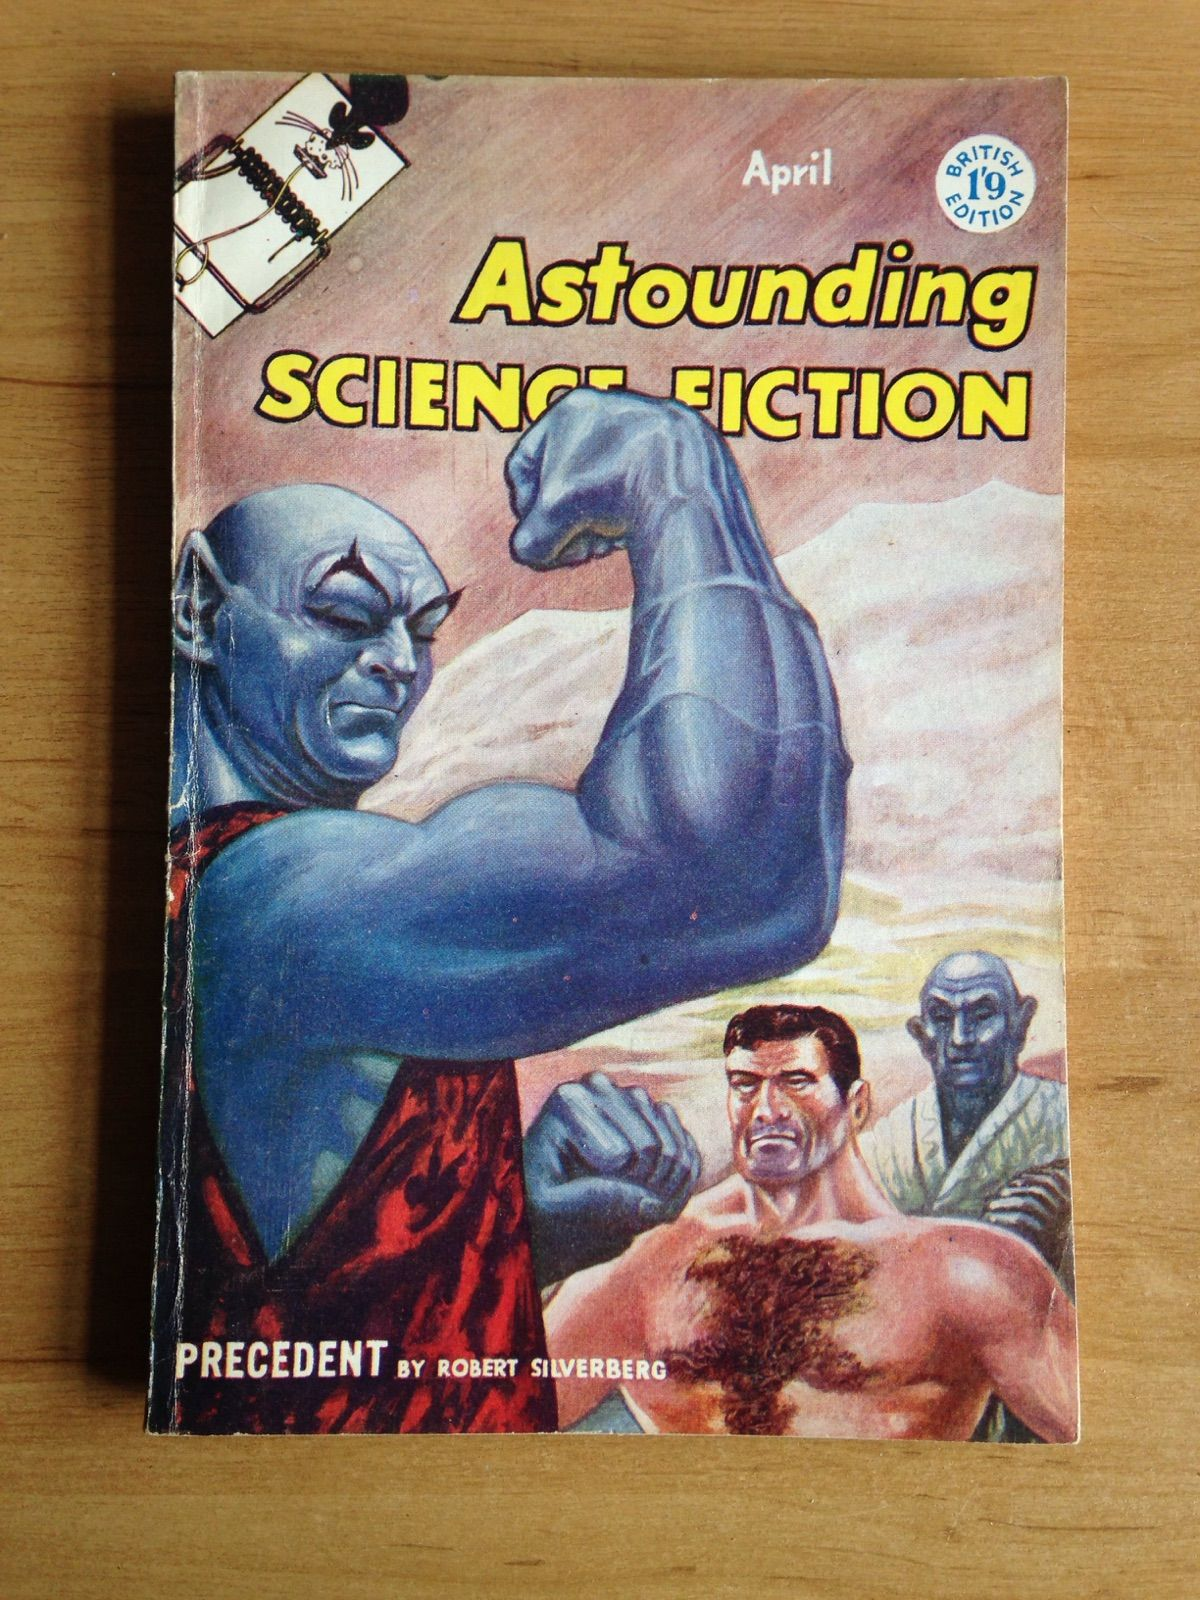 Astounding Science Fiction Pulp Magazine April 1958 An attractive copy of one of the great vintage Science Fiction pulp magazines from April 1958 with stories by Robert Silverberg & Robert E. Heinlein amongst others. British Edition. Slight wear & slight creasing to spine, covers & corners.   https://nemb.ly/p/HyA5r5hex Happily published via Nembol